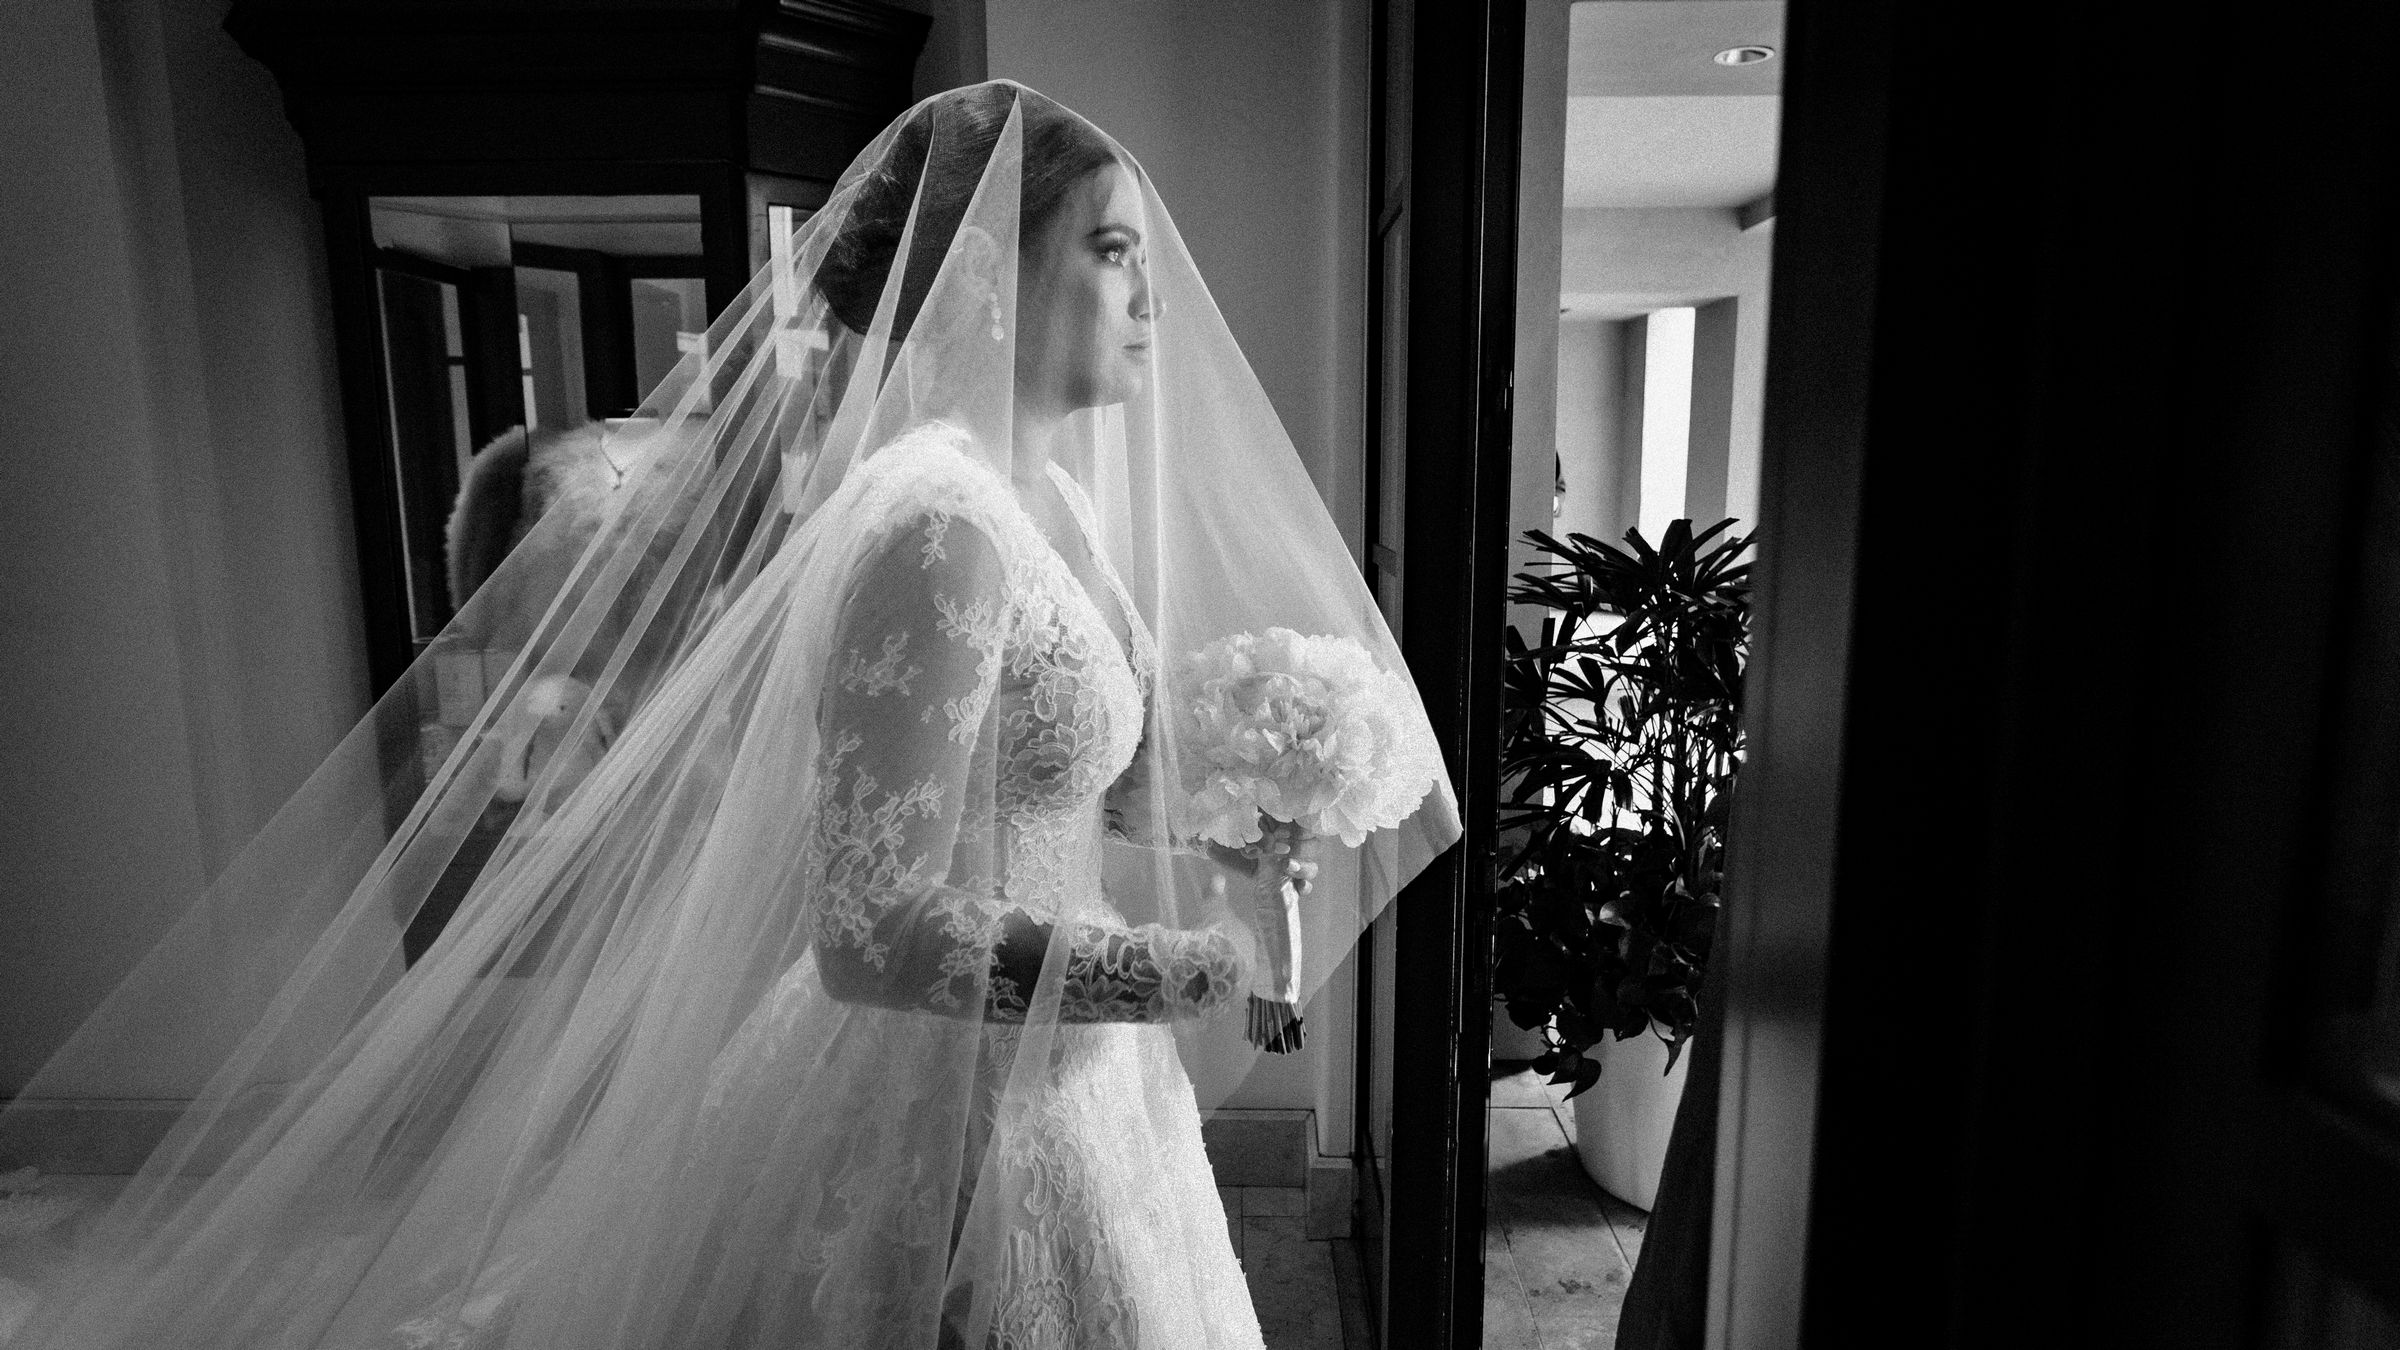 maria-emotional-moments-before-walking-down-the-aisle-wedding-mzef1497.jpg